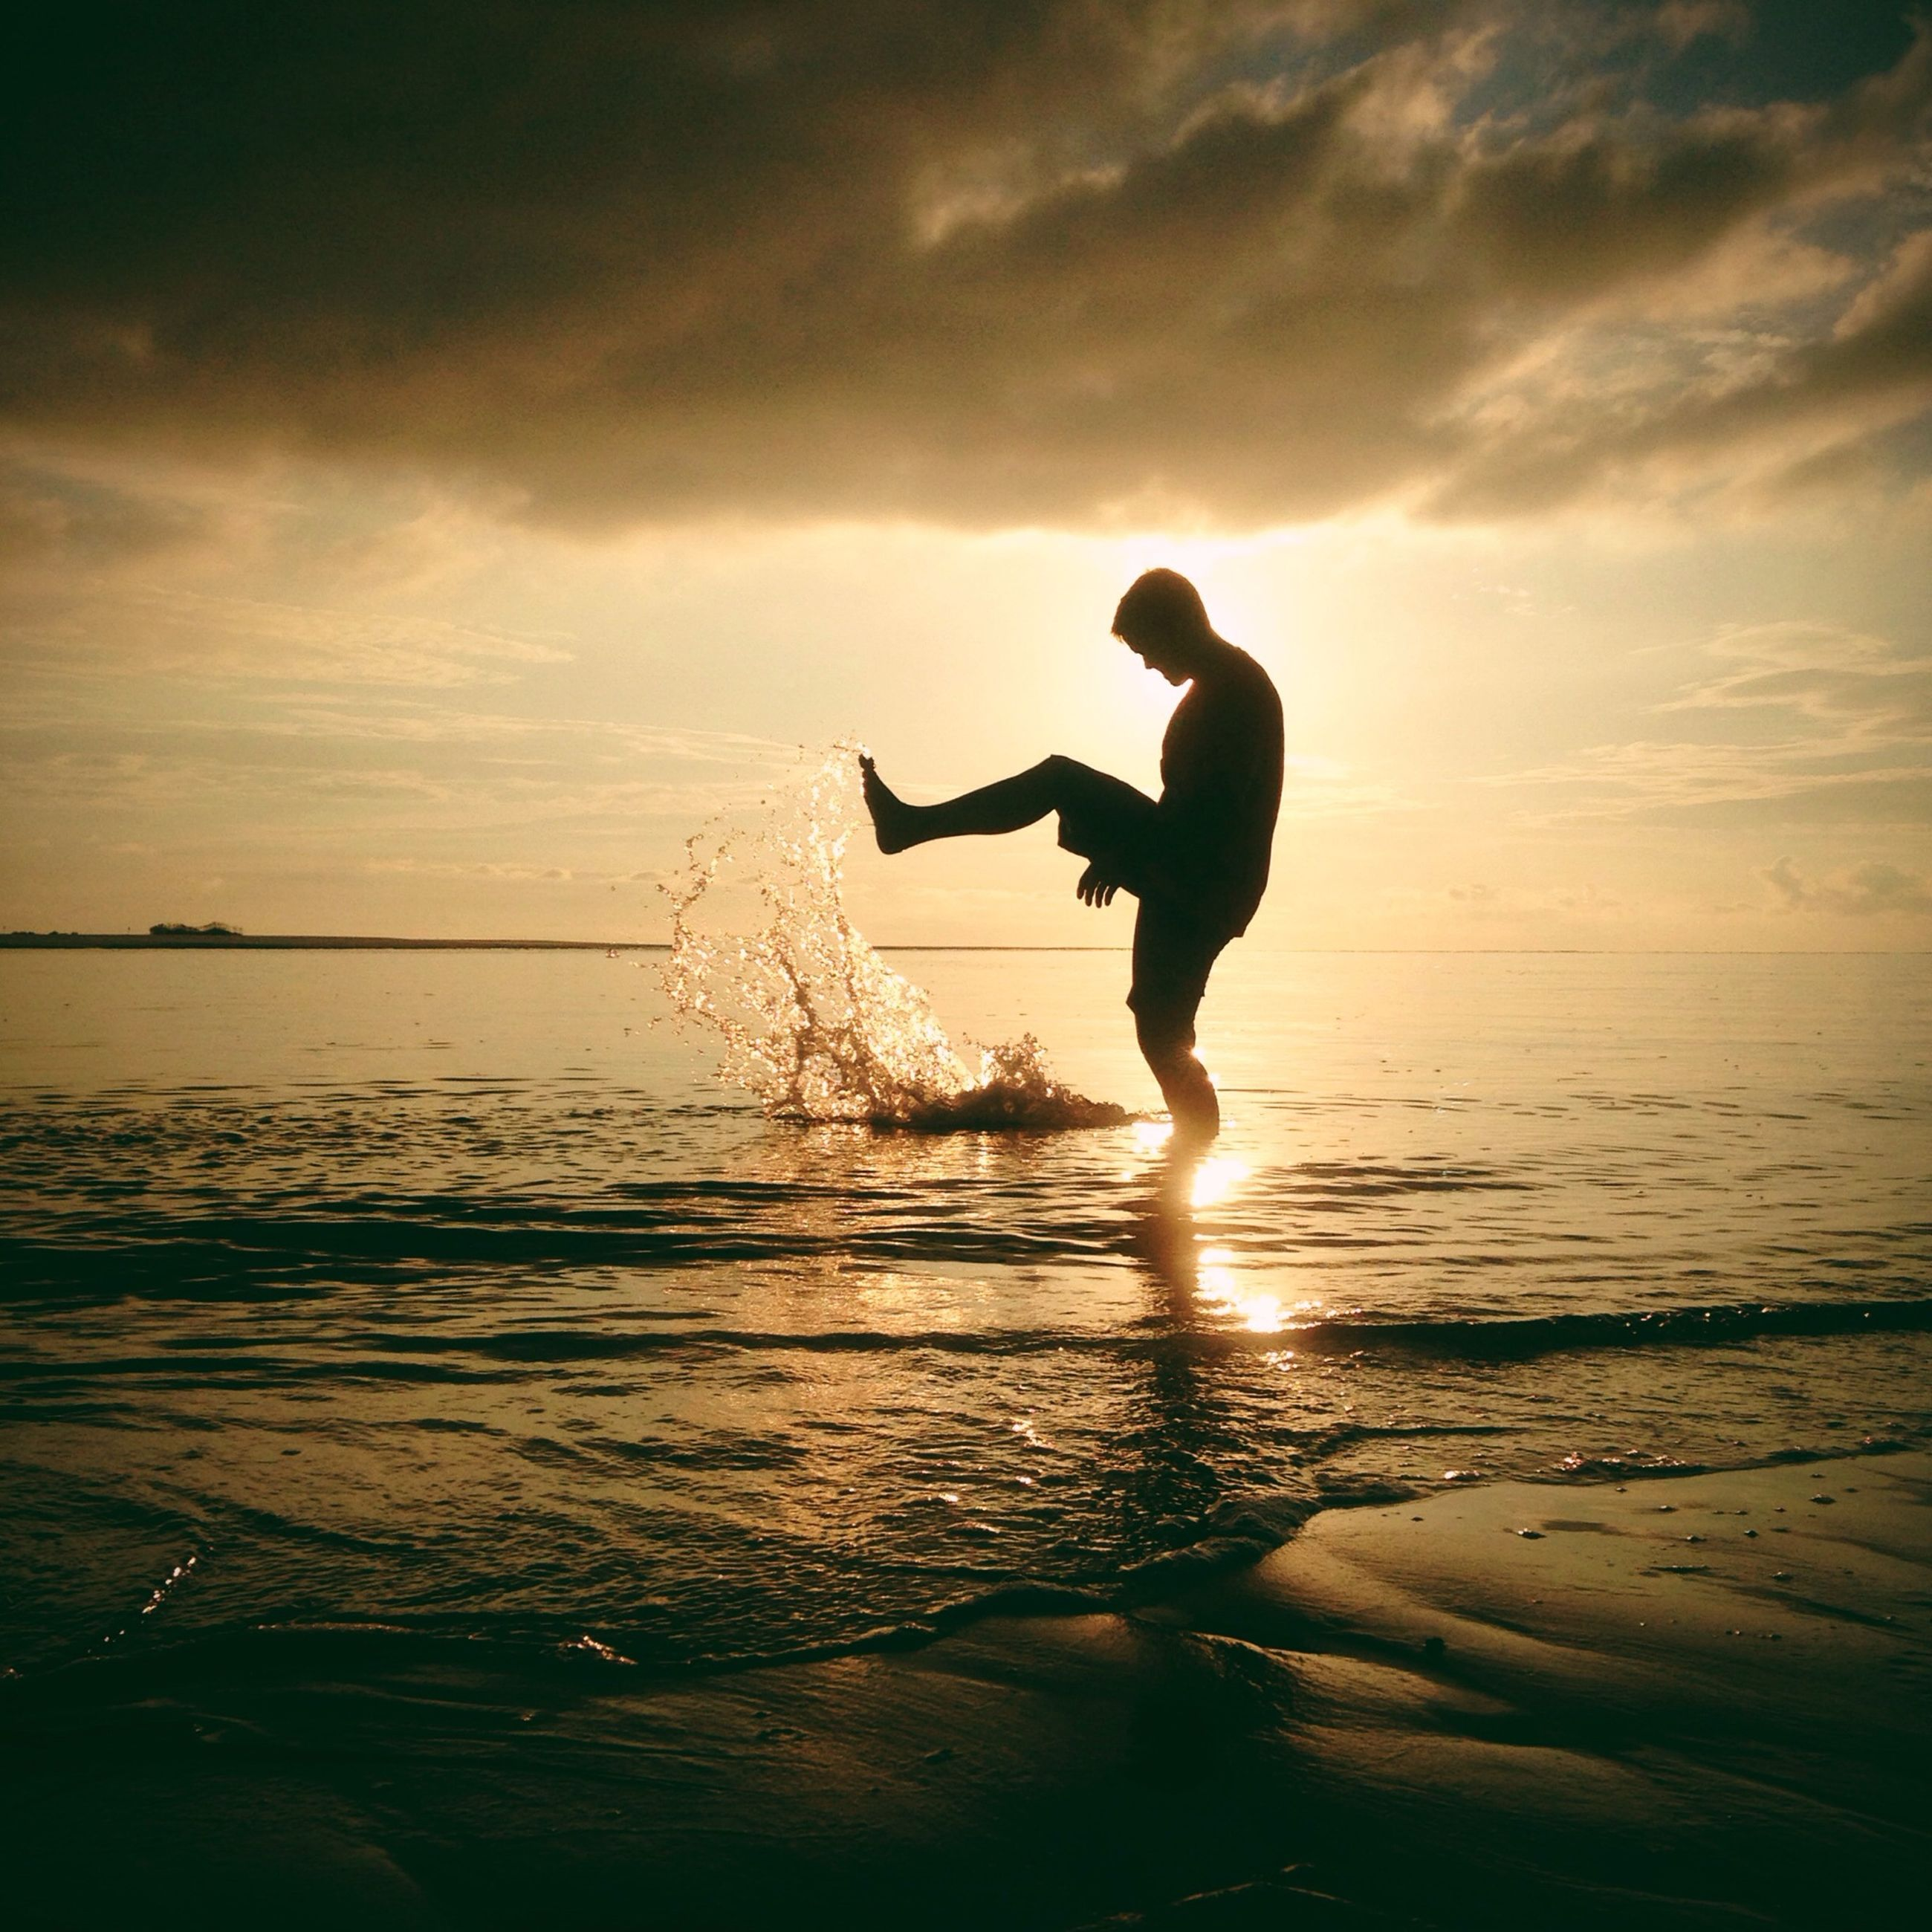 sea, full length, water, sky, lifestyles, leisure activity, sunset, beach, silhouette, horizon over water, shore, cloud - sky, jumping, scenics, tranquil scene, beauty in nature, mid-air, men